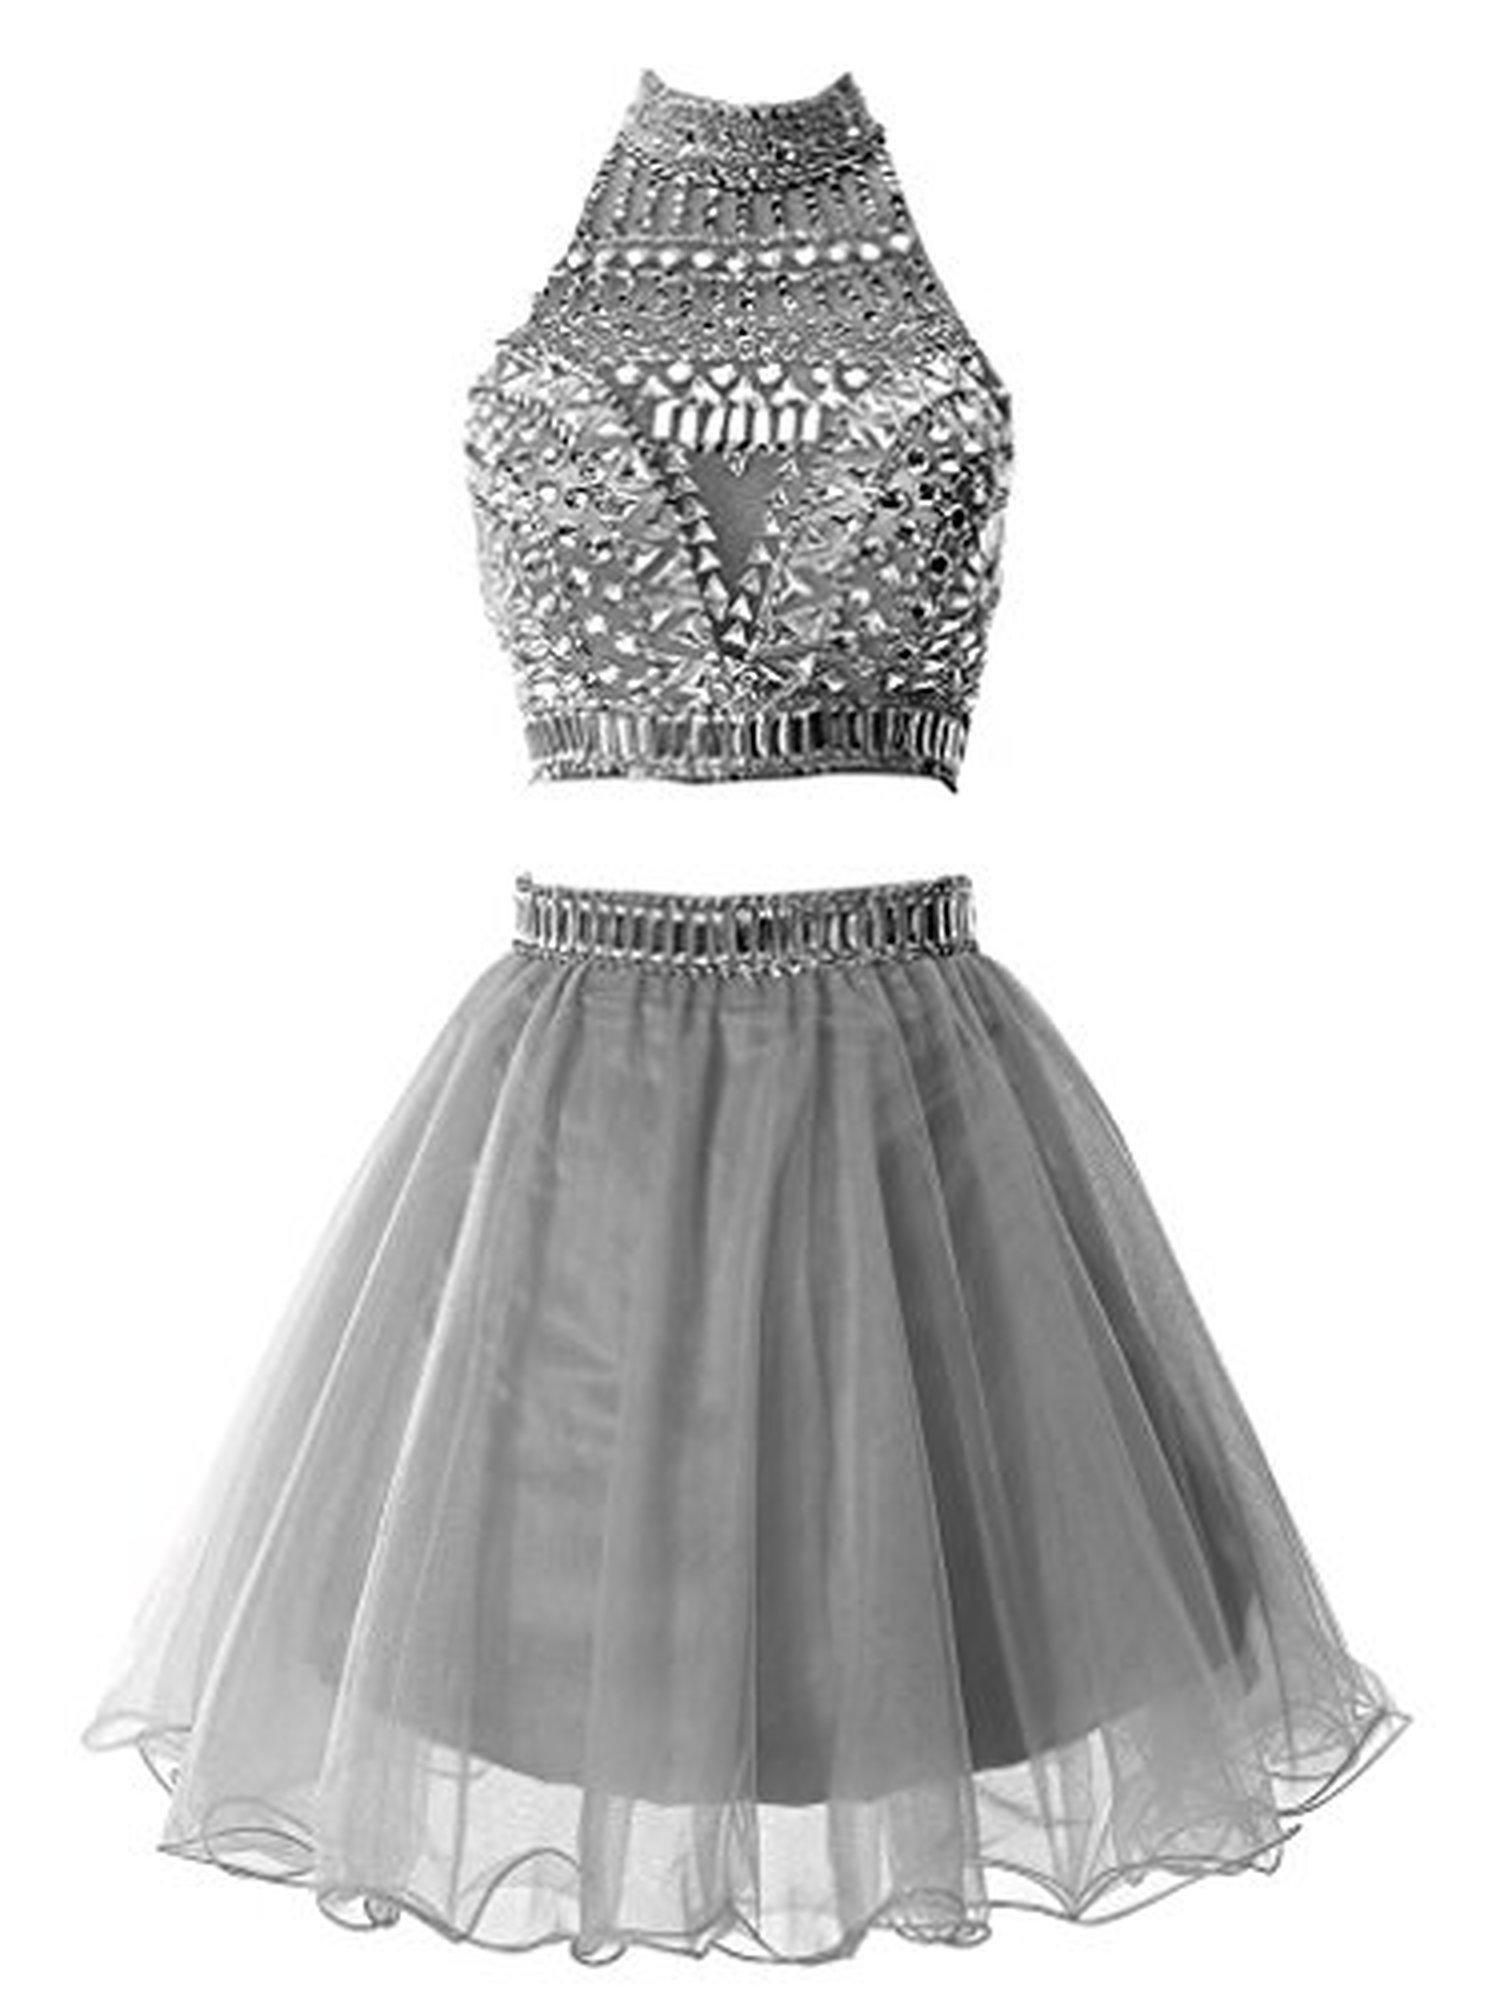 Pin by simone c on slcsothingkes in pinterest dresses